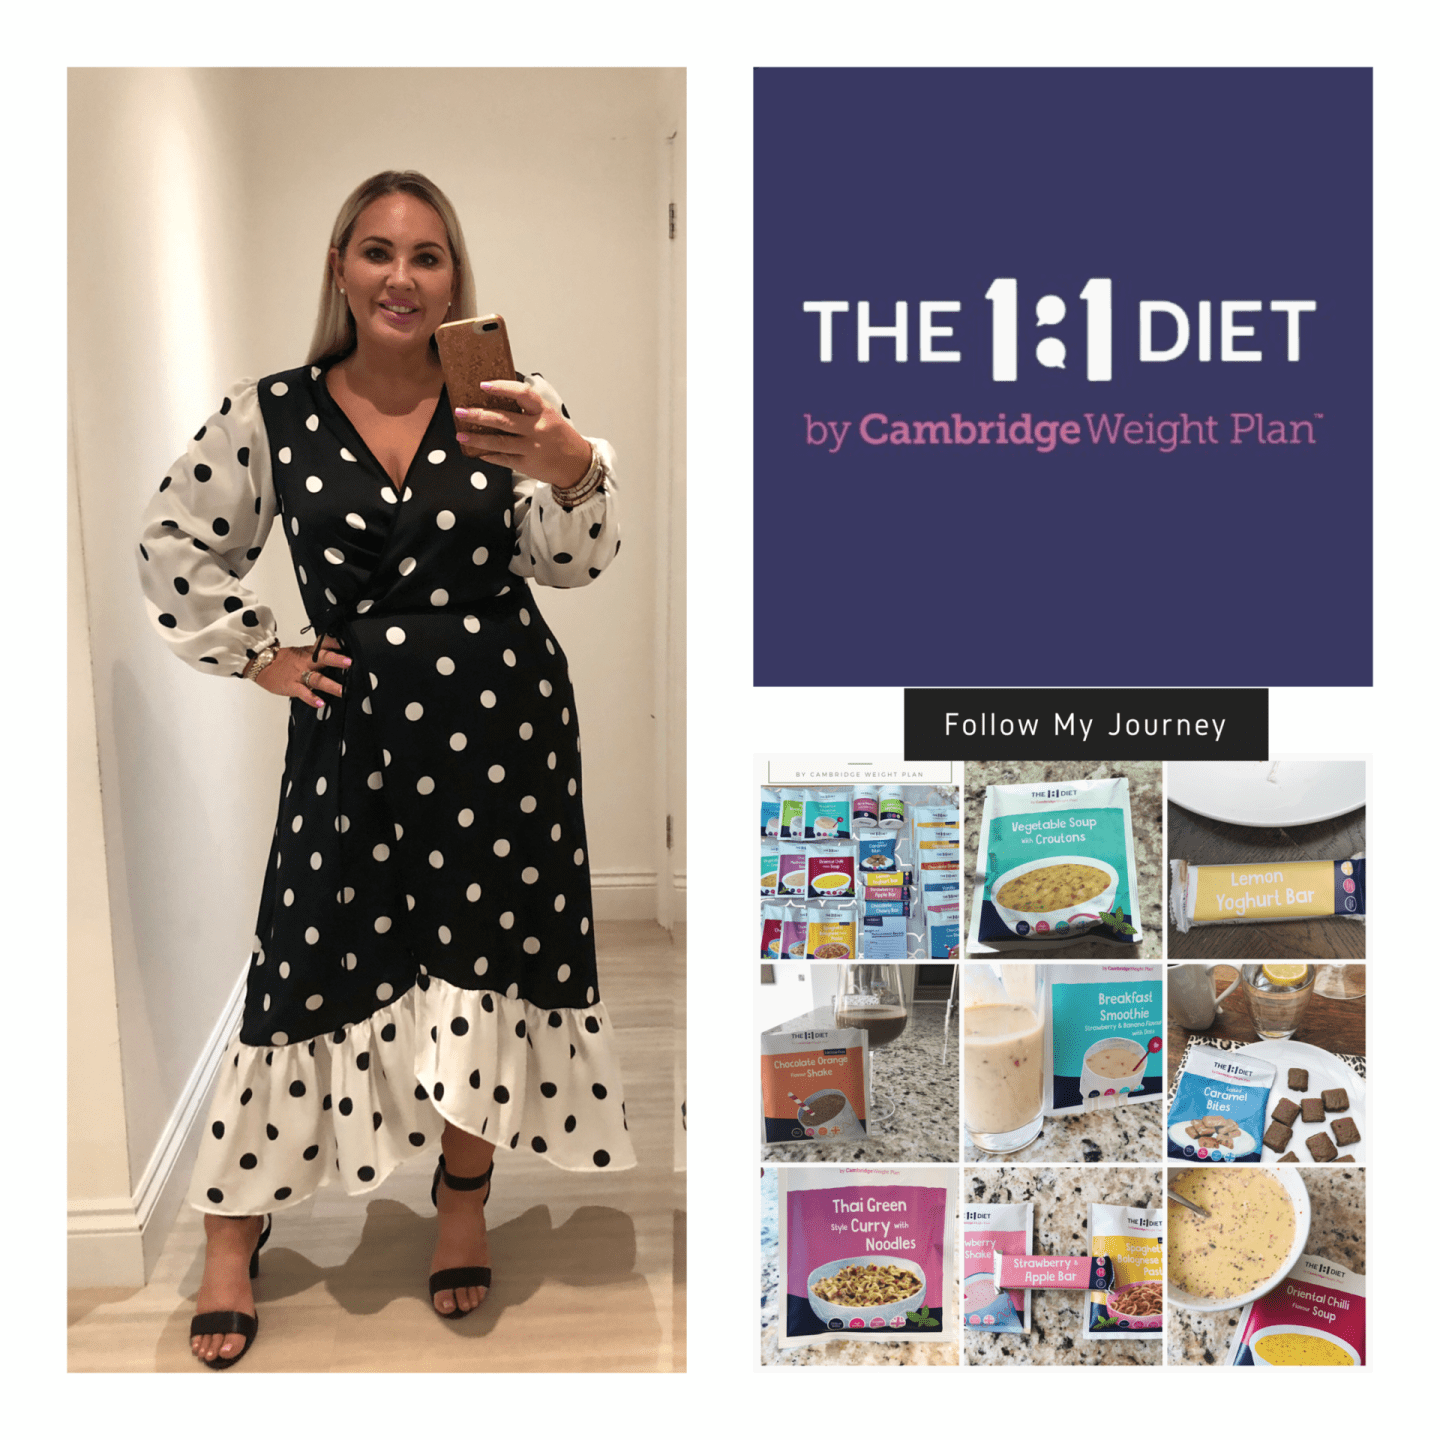 The 1-1 Diet - Week Two